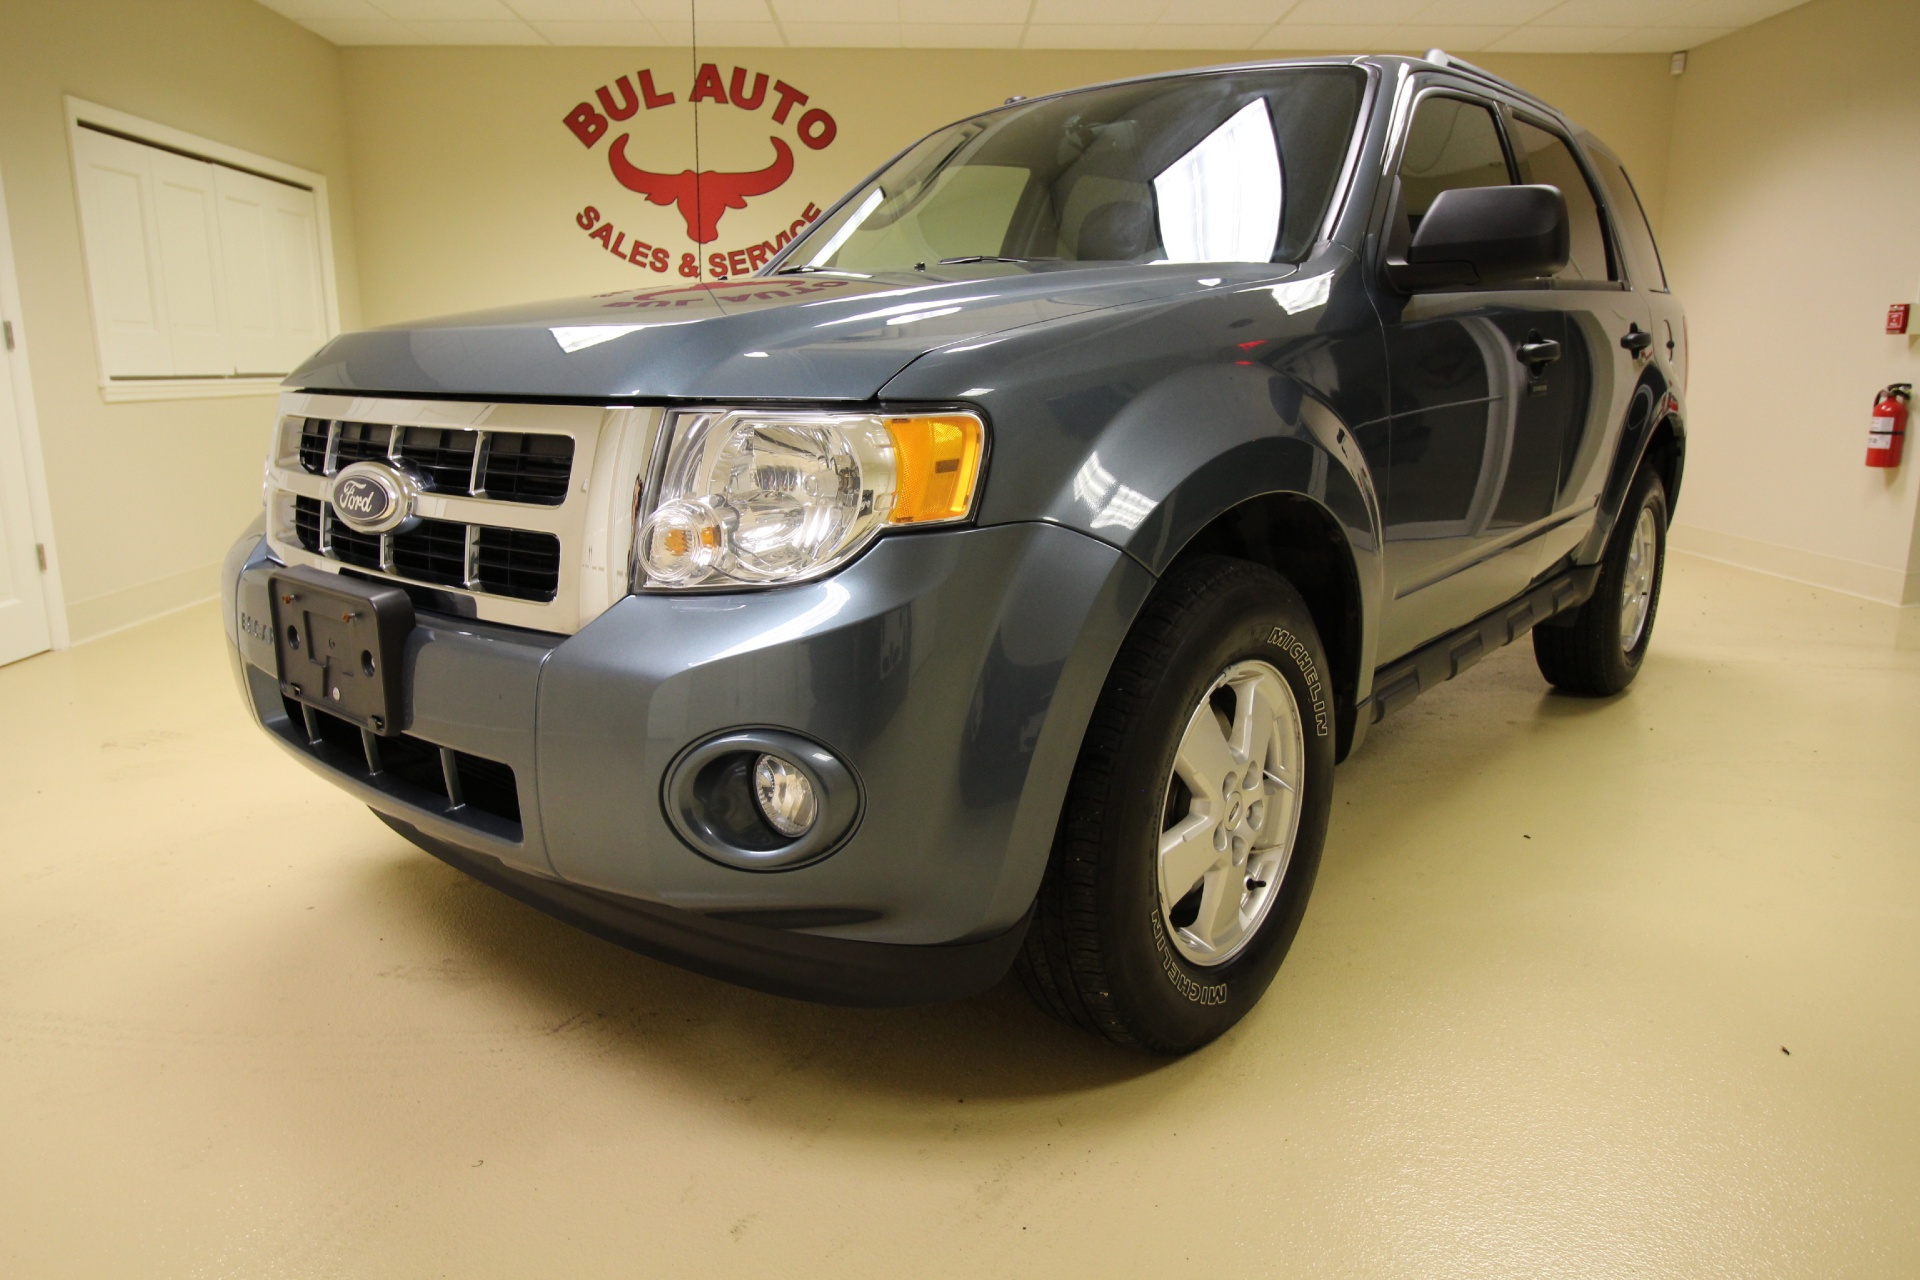 new 4x4 cars for sale near me used cars. Black Bedroom Furniture Sets. Home Design Ideas